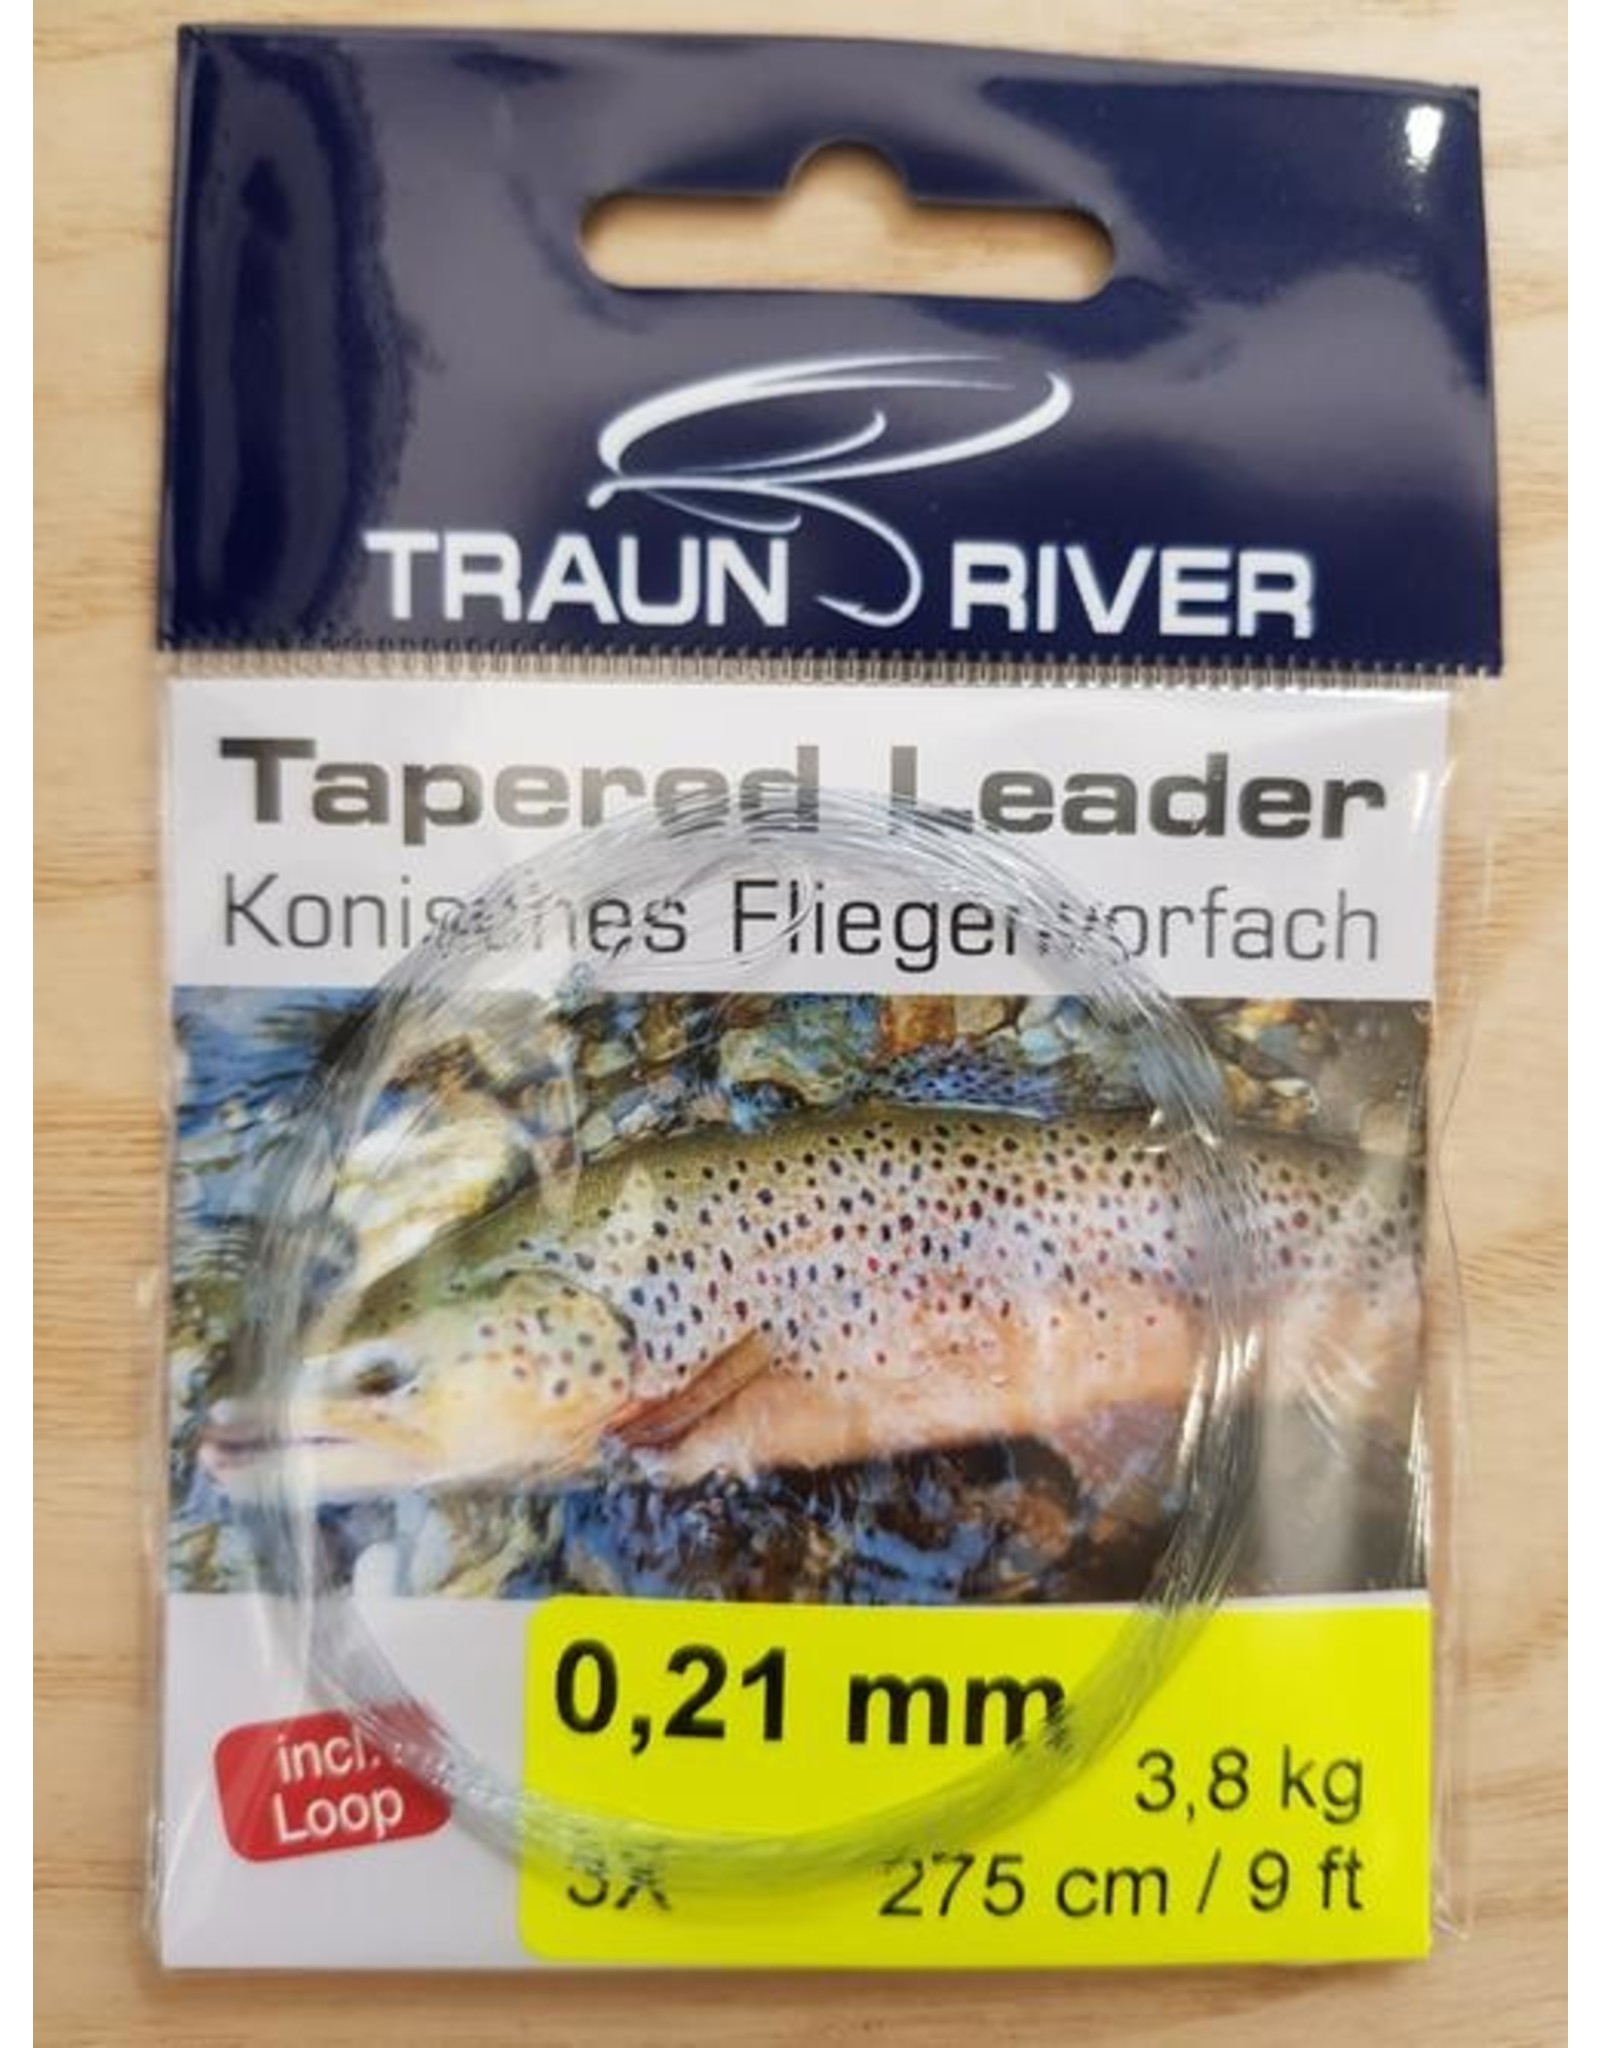 traun river Tapered Leader